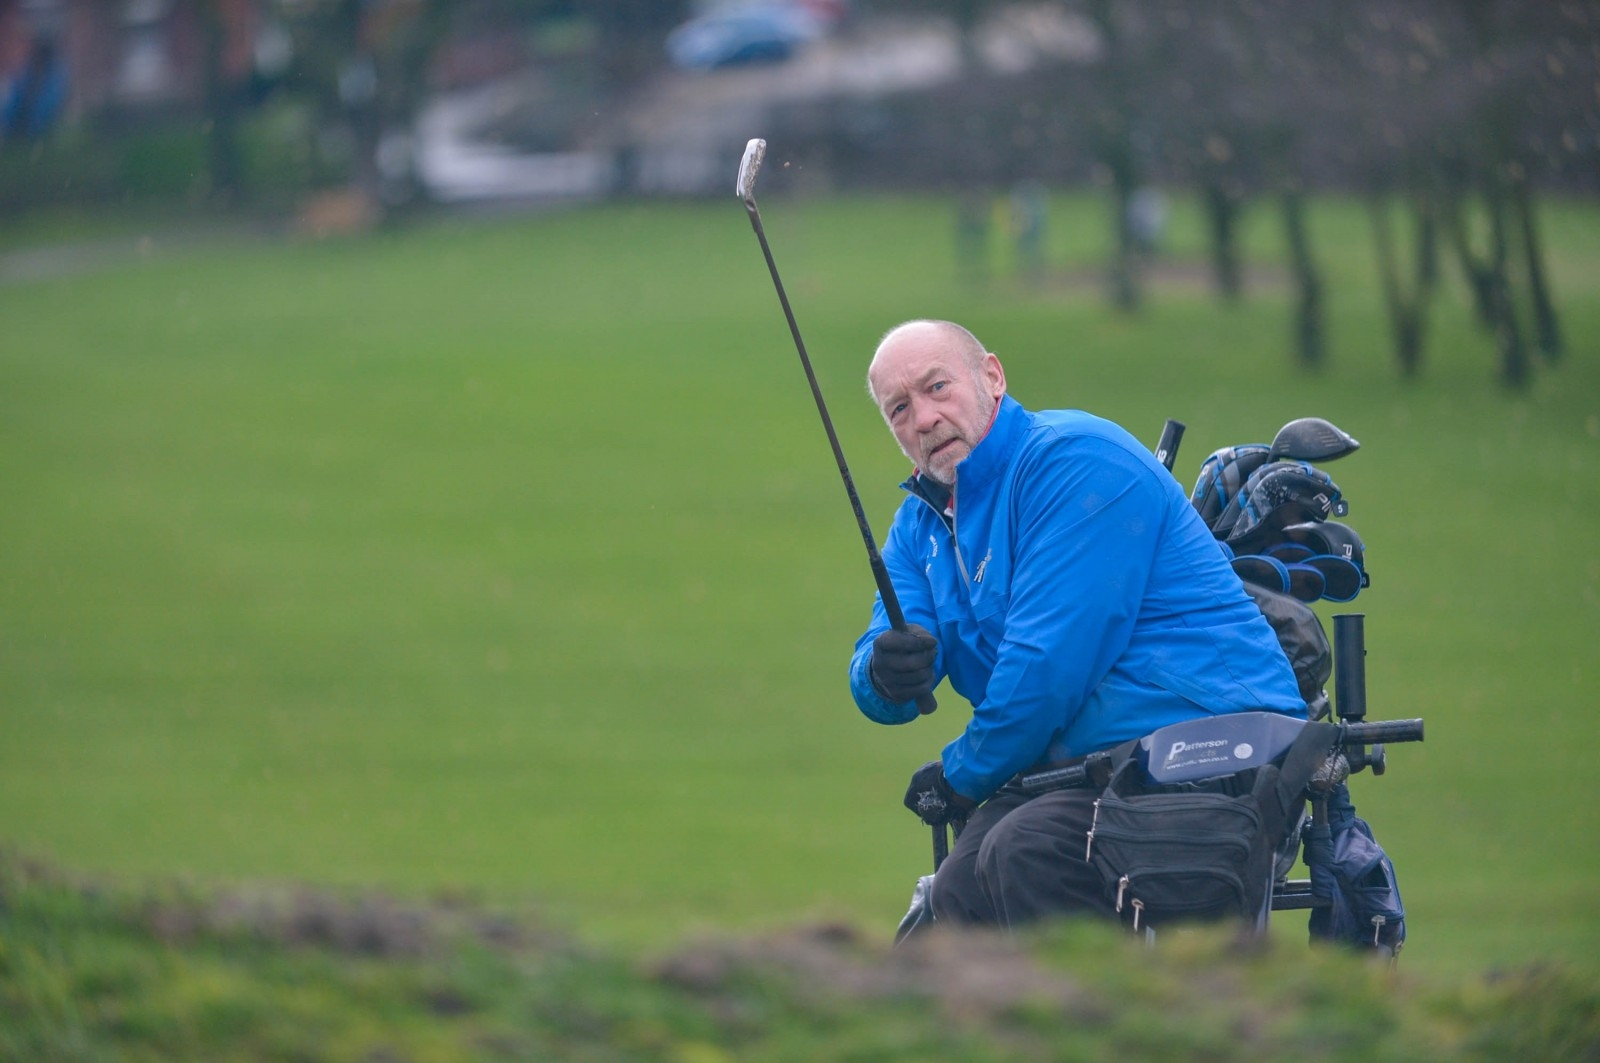 Golfer Who Uses Just One Arm To Play His Shots Is Set To Become The First Paraplegic Captain Of An Able-Bodied Club